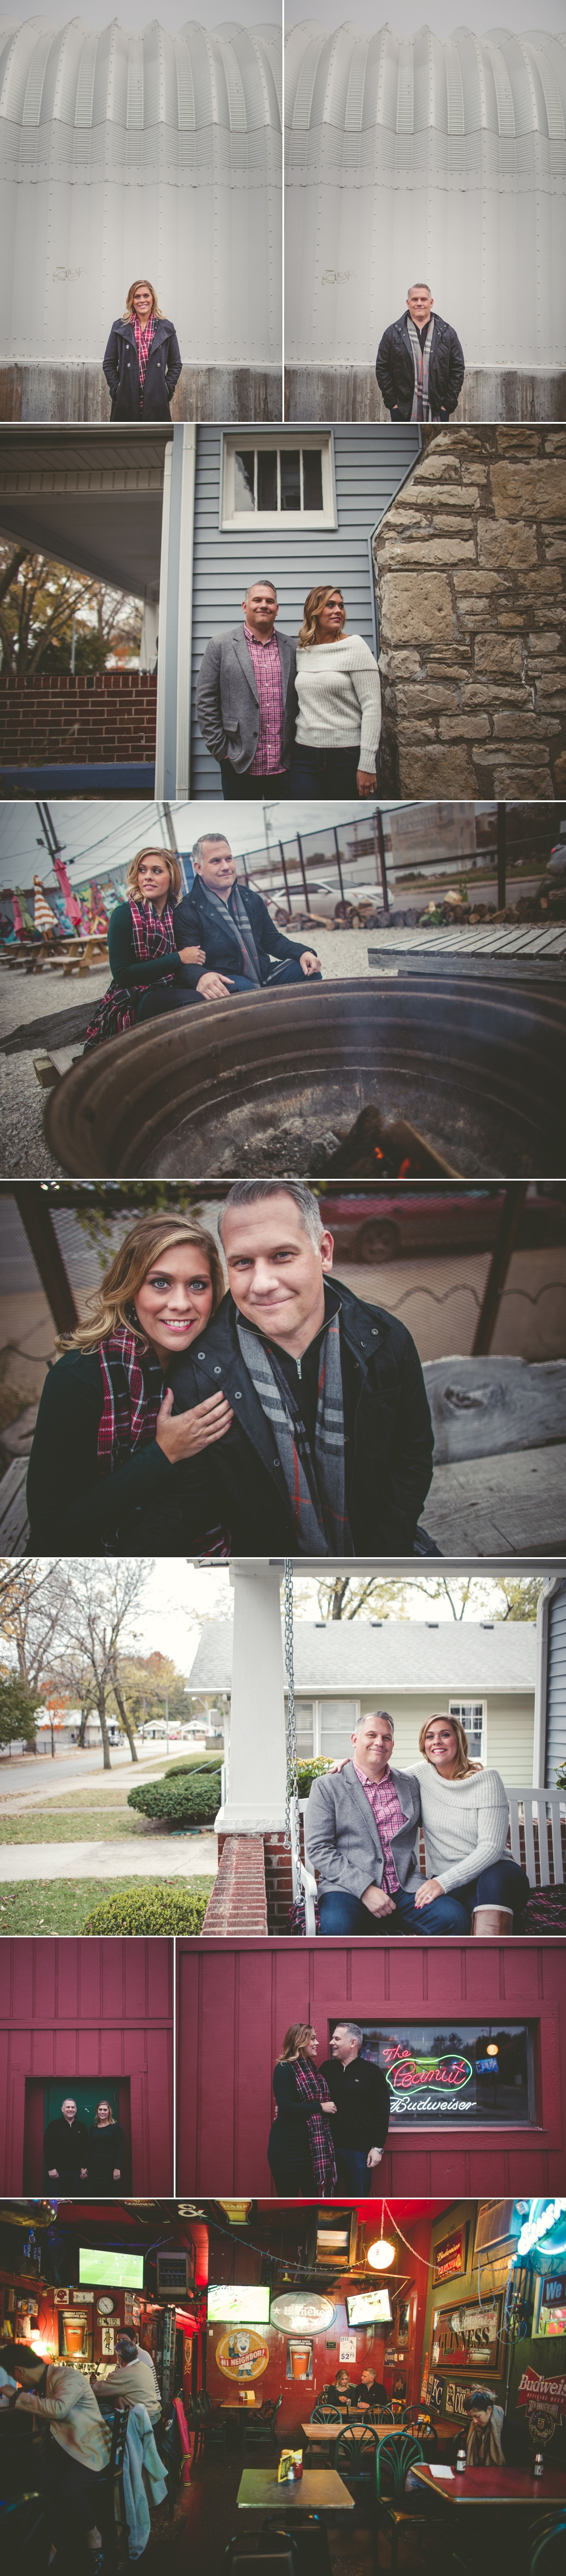 jason_domingues_photography_best_kansas_city_photographer_kc_engagement_session_0002.JPG